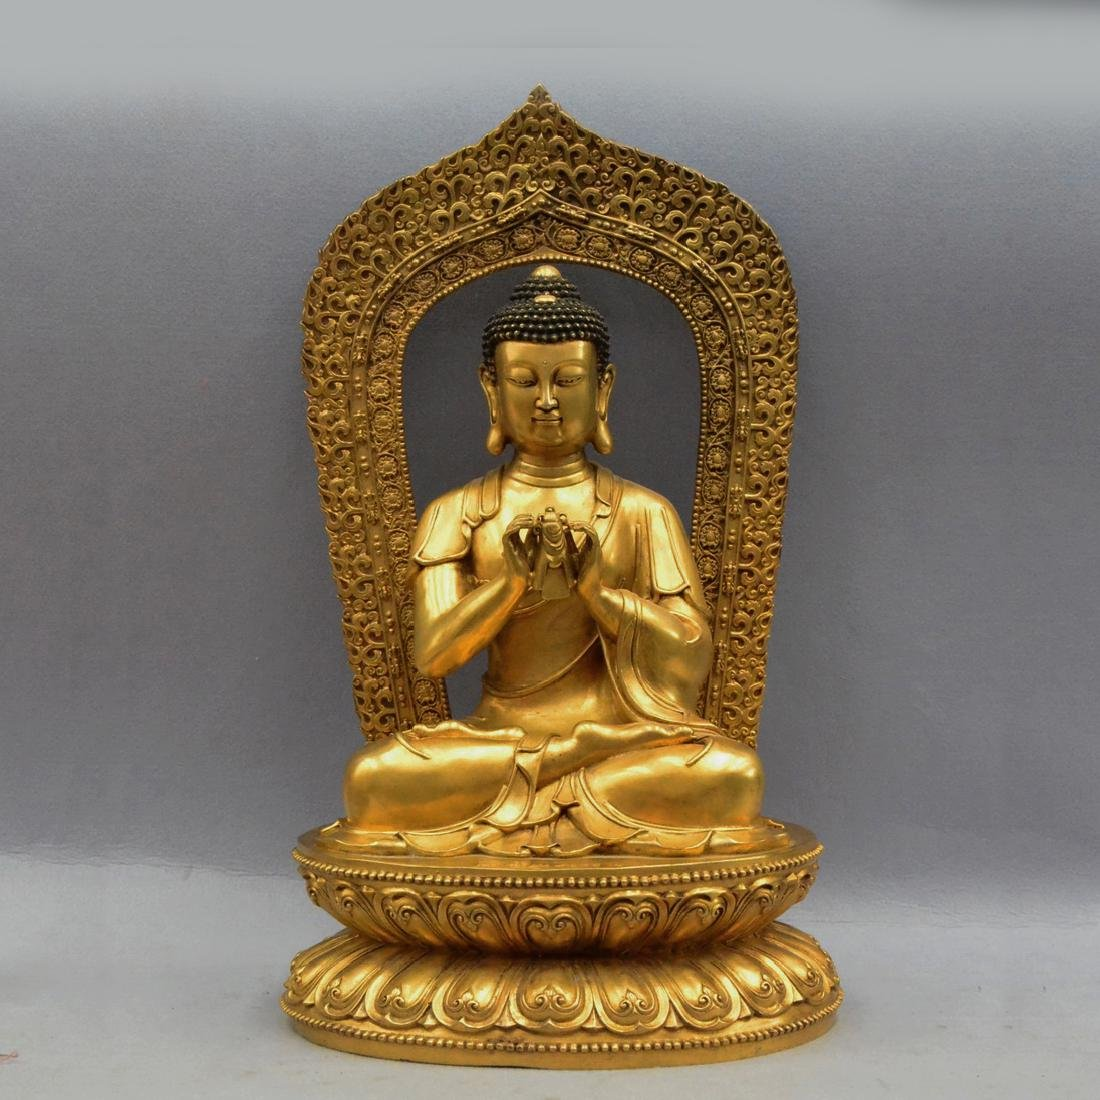 A GILT BRONZE BUDDHA FIGURE